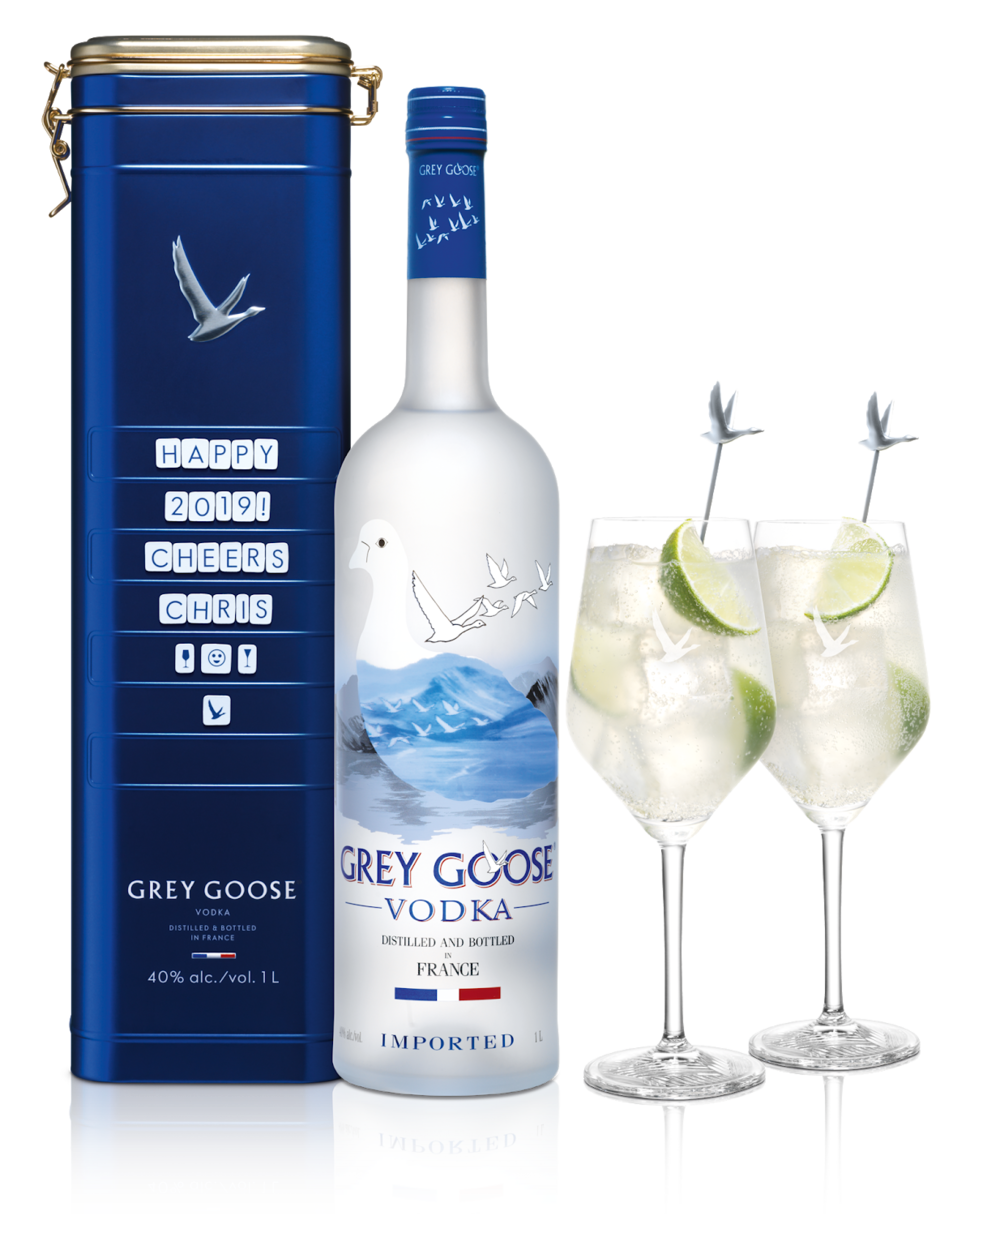 Grey Goose Launches Holiday Marche At Jfk Grey Goose Grey Goose Vodka Vodka